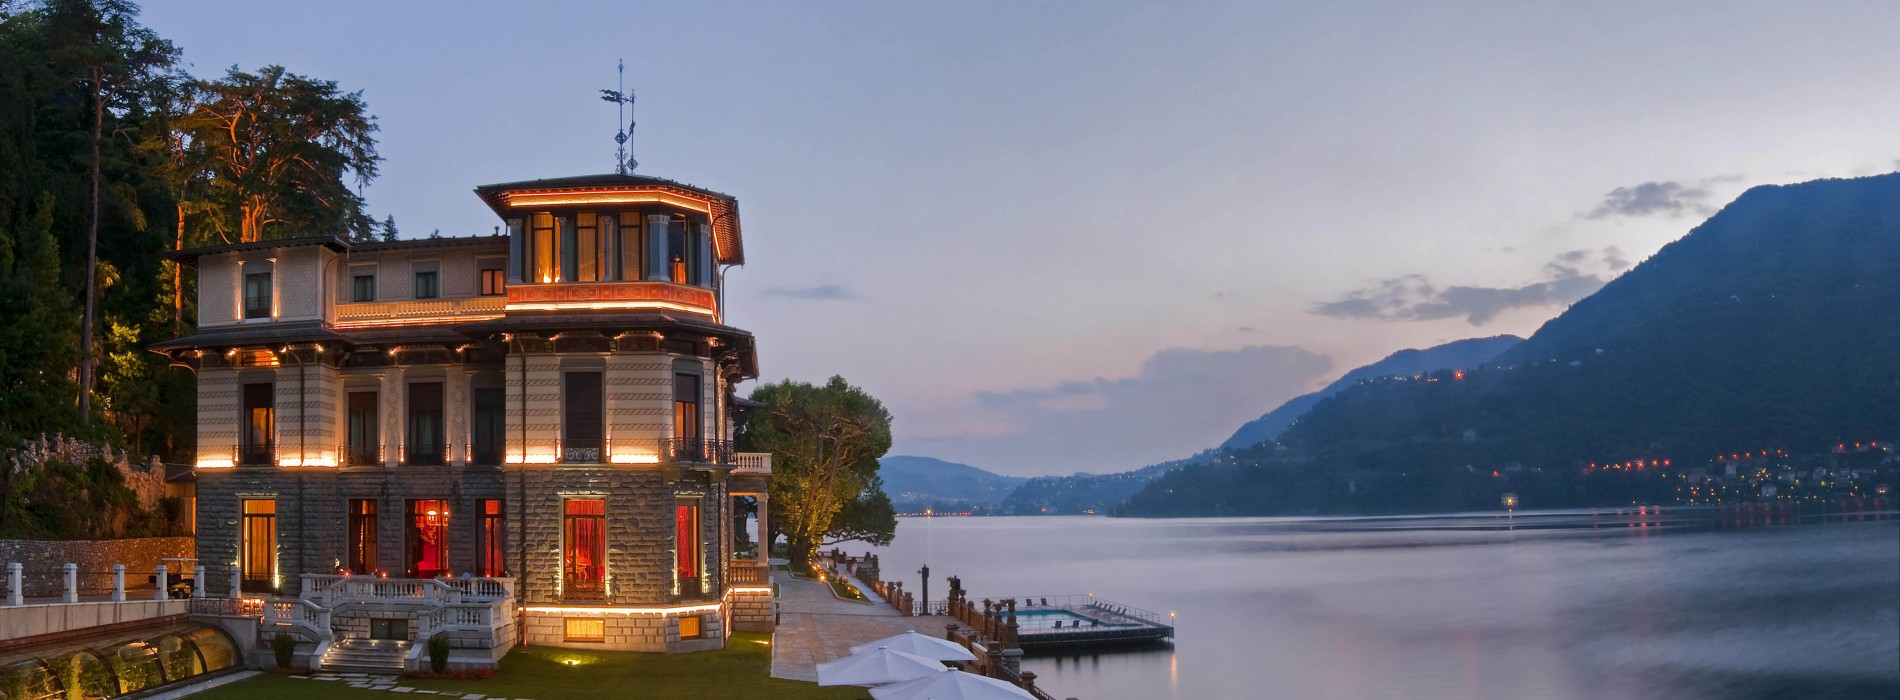 Mandarin Oriental to manage luxury resort on Lake Como